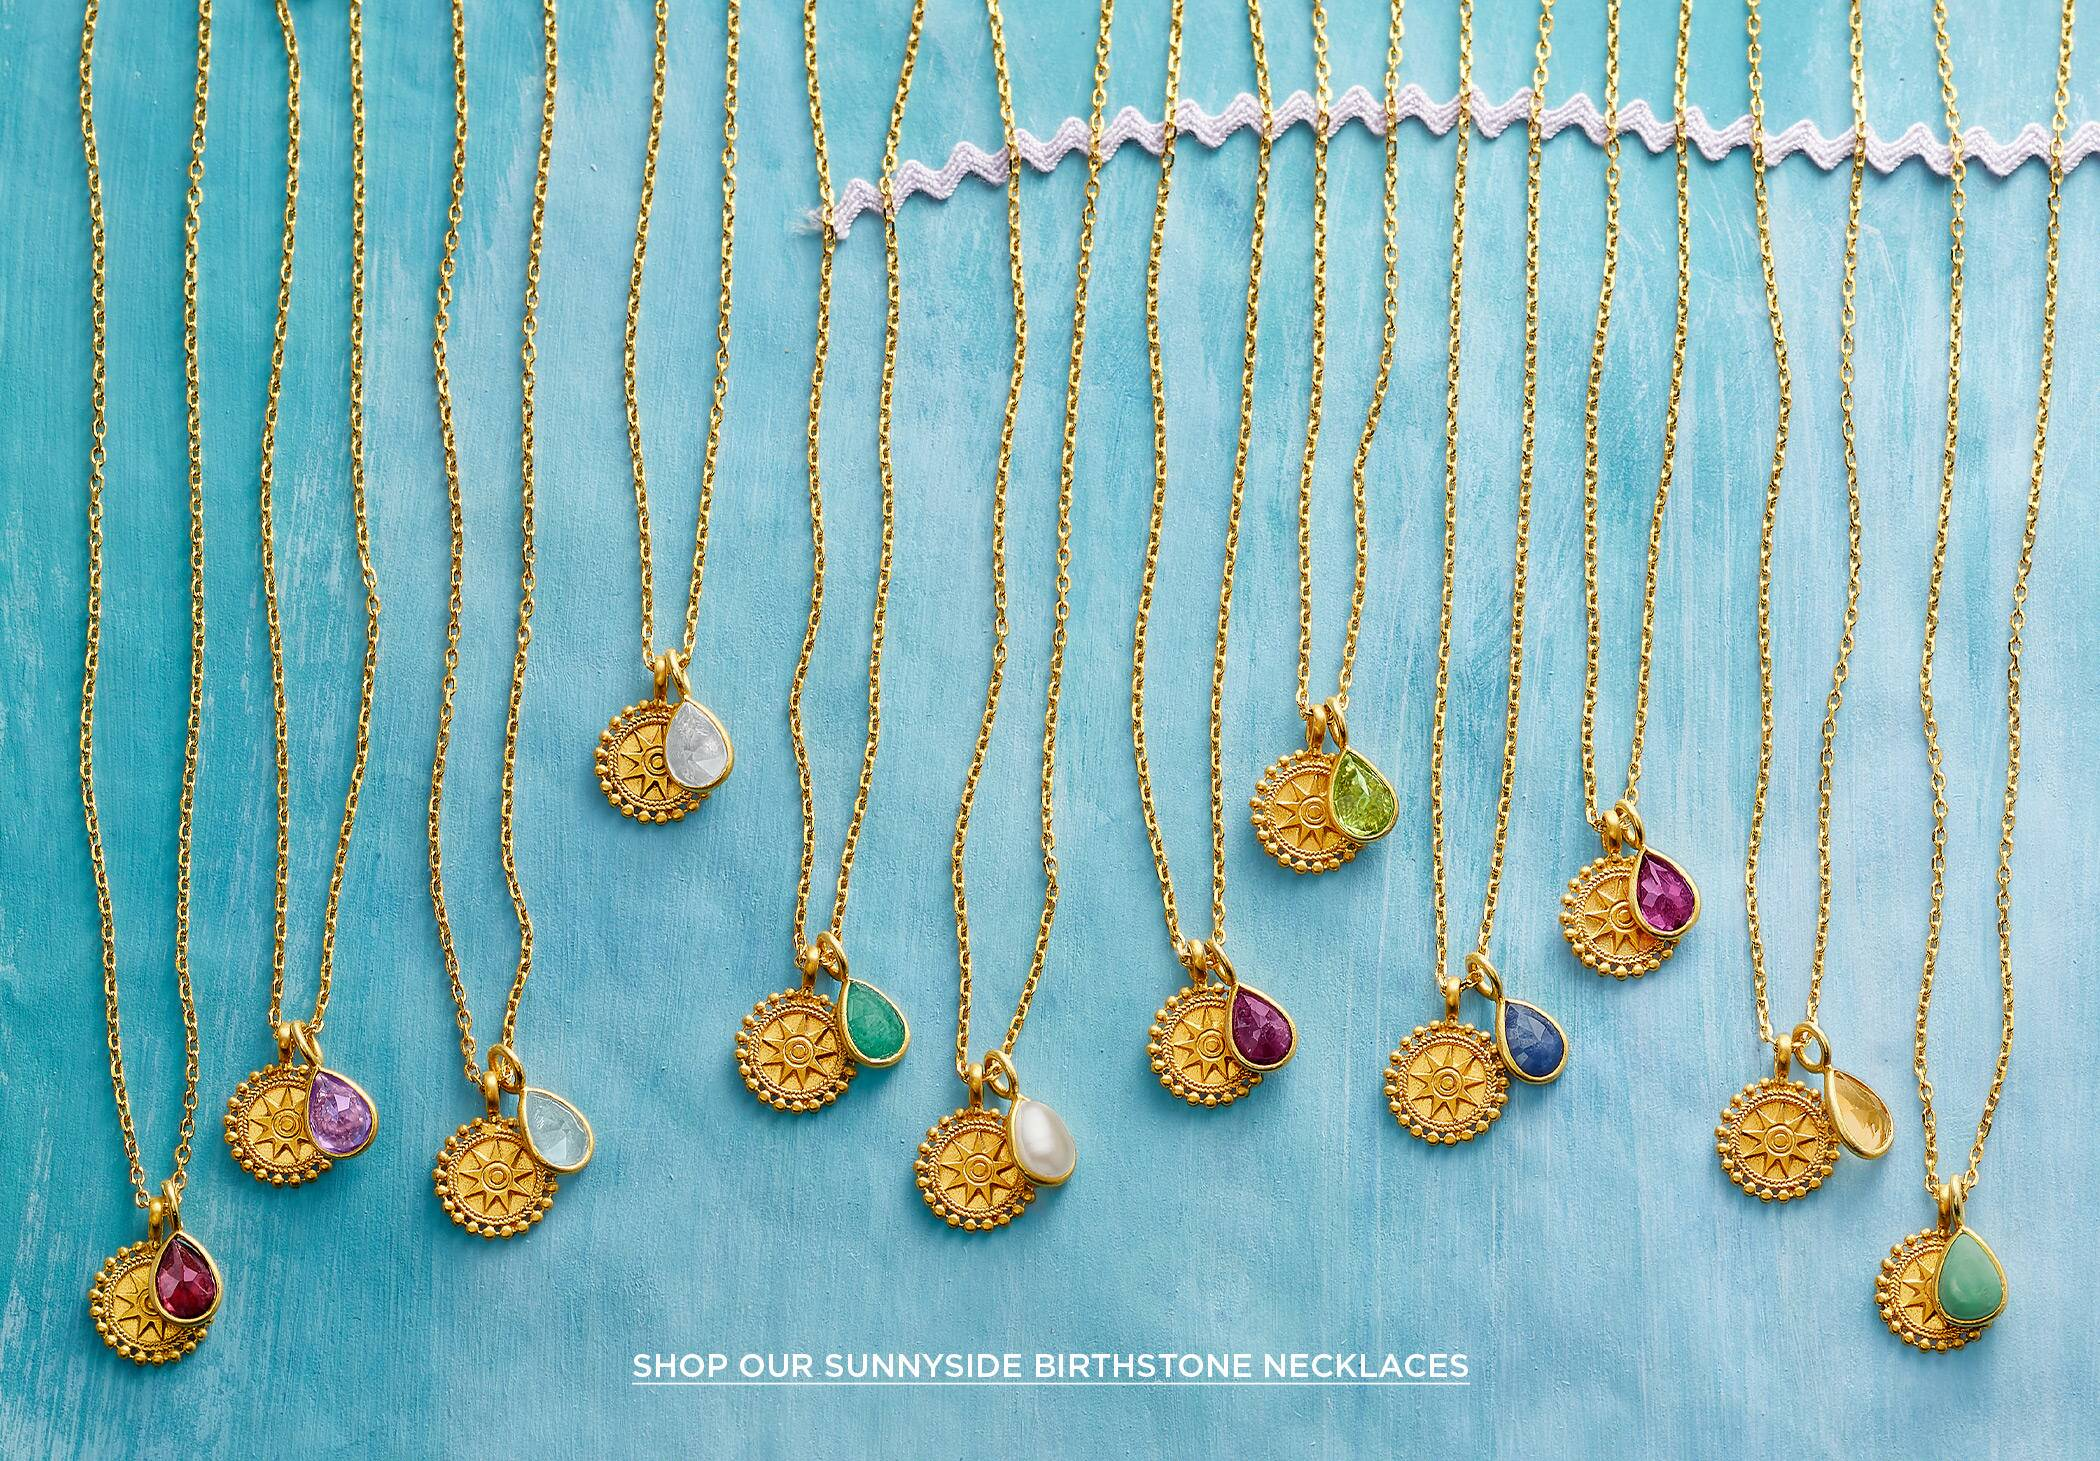 Sunnyside Birthstone Necklaces